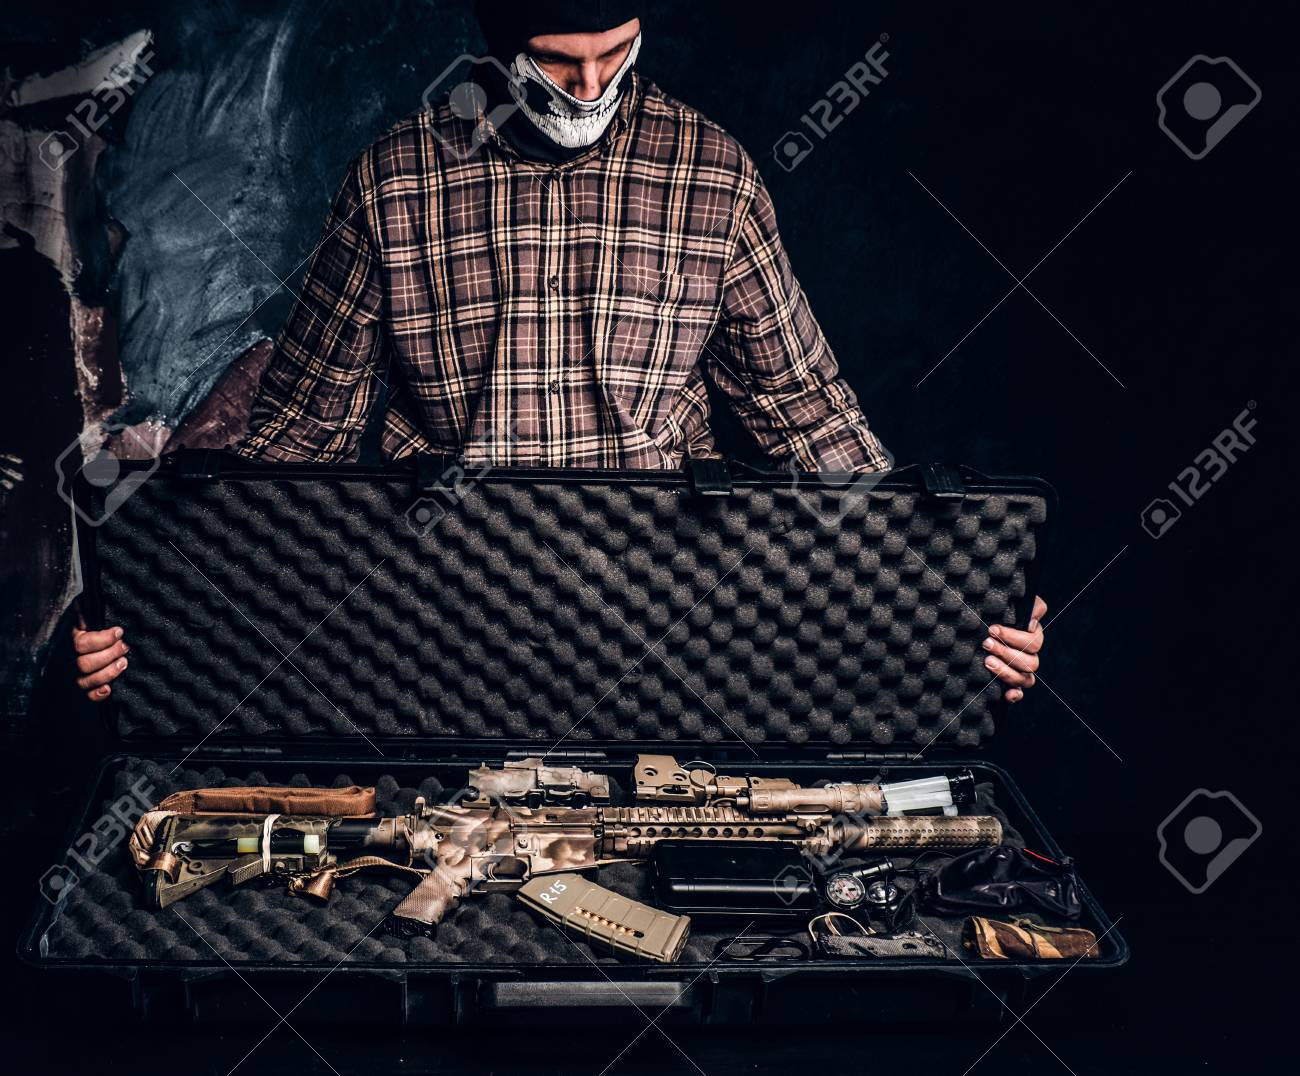 Illegal sale of weapons, black market, the criminal opens the